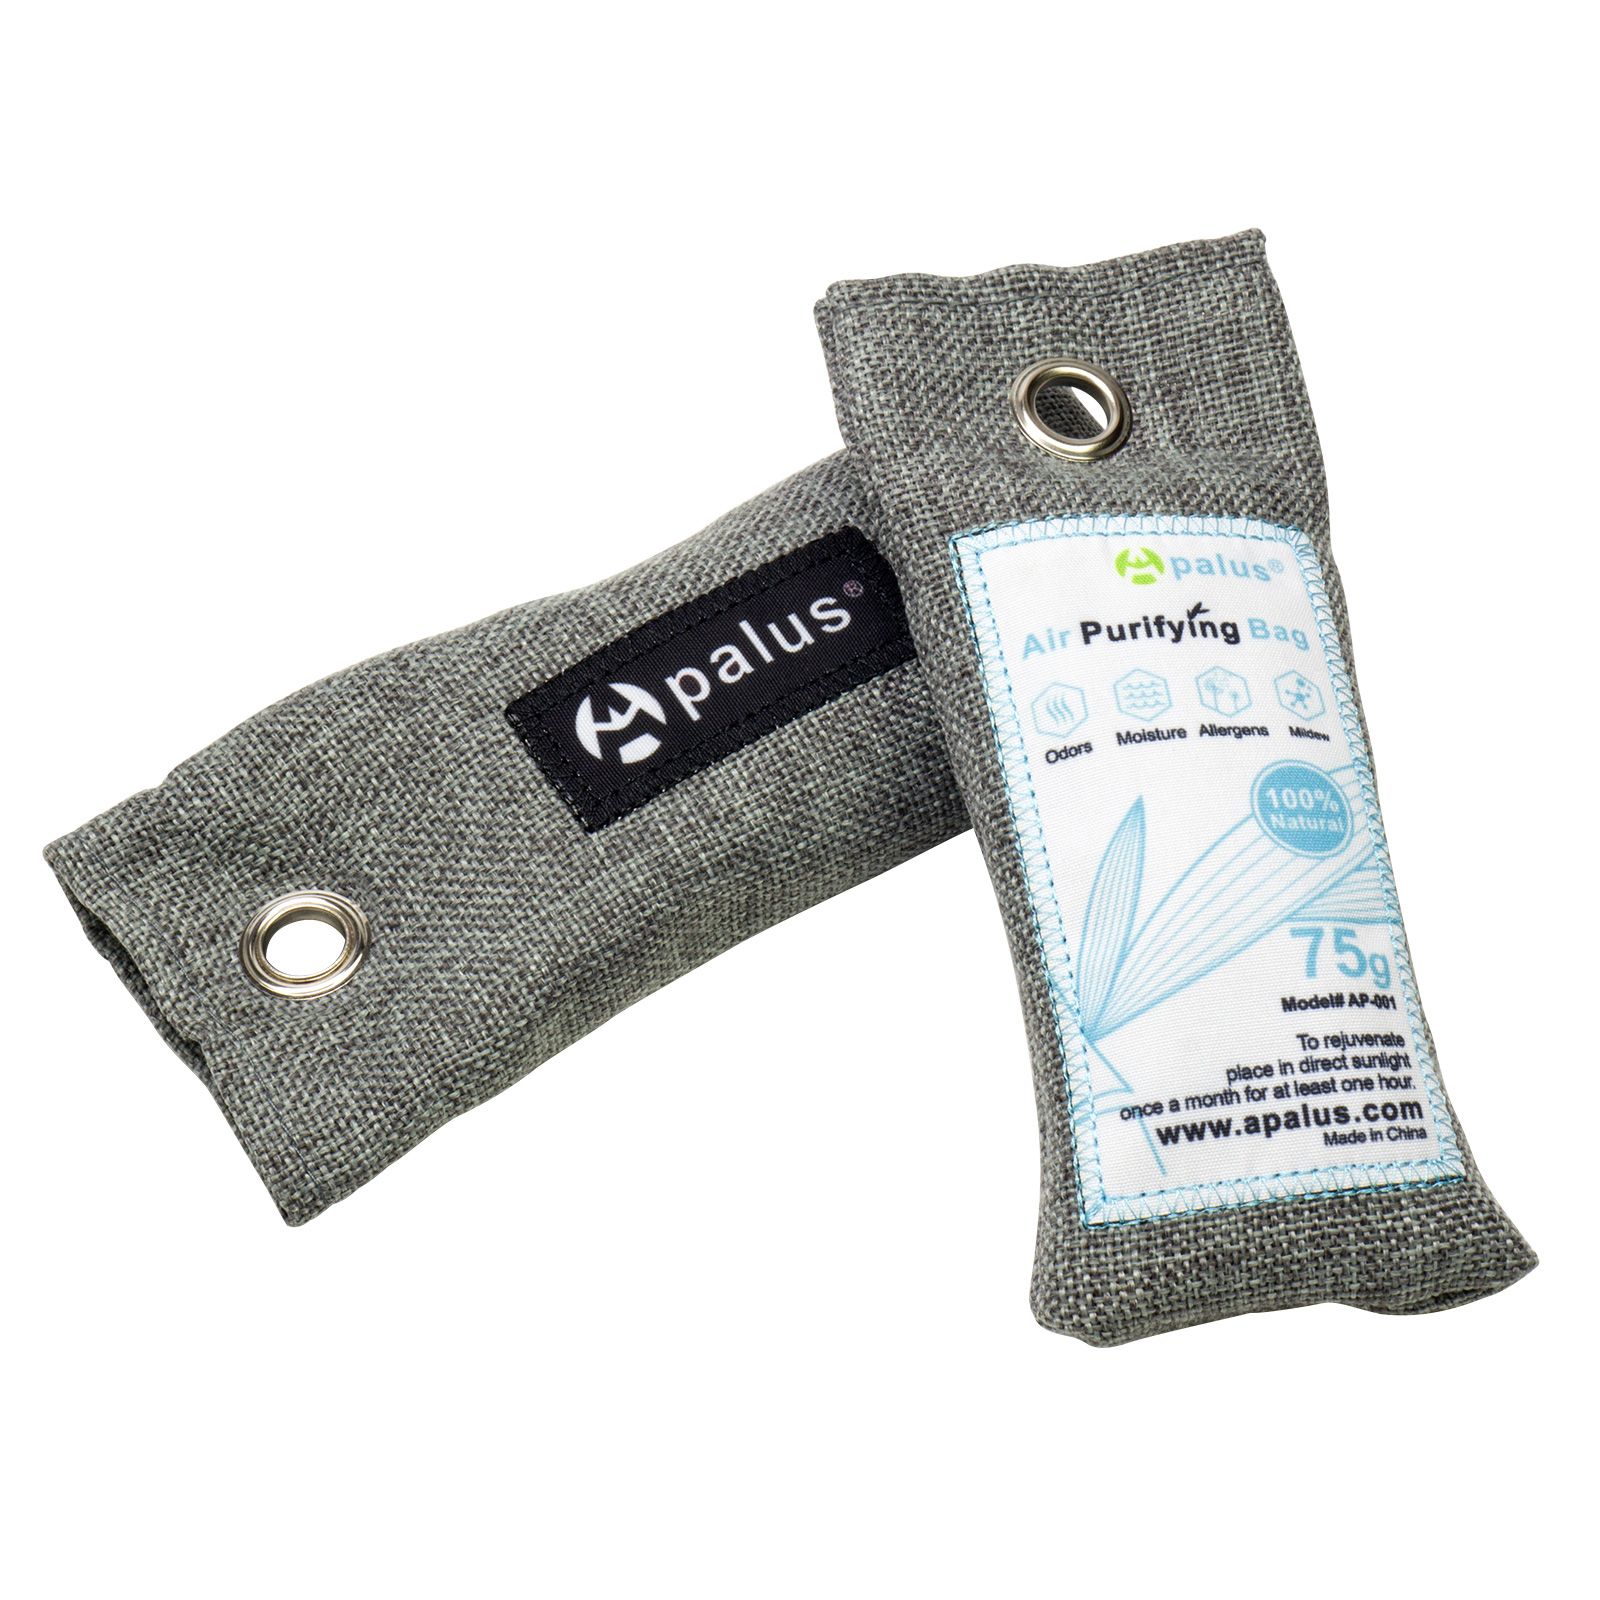 Apalus Mini Air Purifier Bags, Bamboo Activated Charcoal Air Freshener, Odor Eliminator For Shoes | Gym Bags |Closet -100% Natural & Chemical Free Moisture, Odor Absorber, Odor Neutralizer,75Gx2 Pack